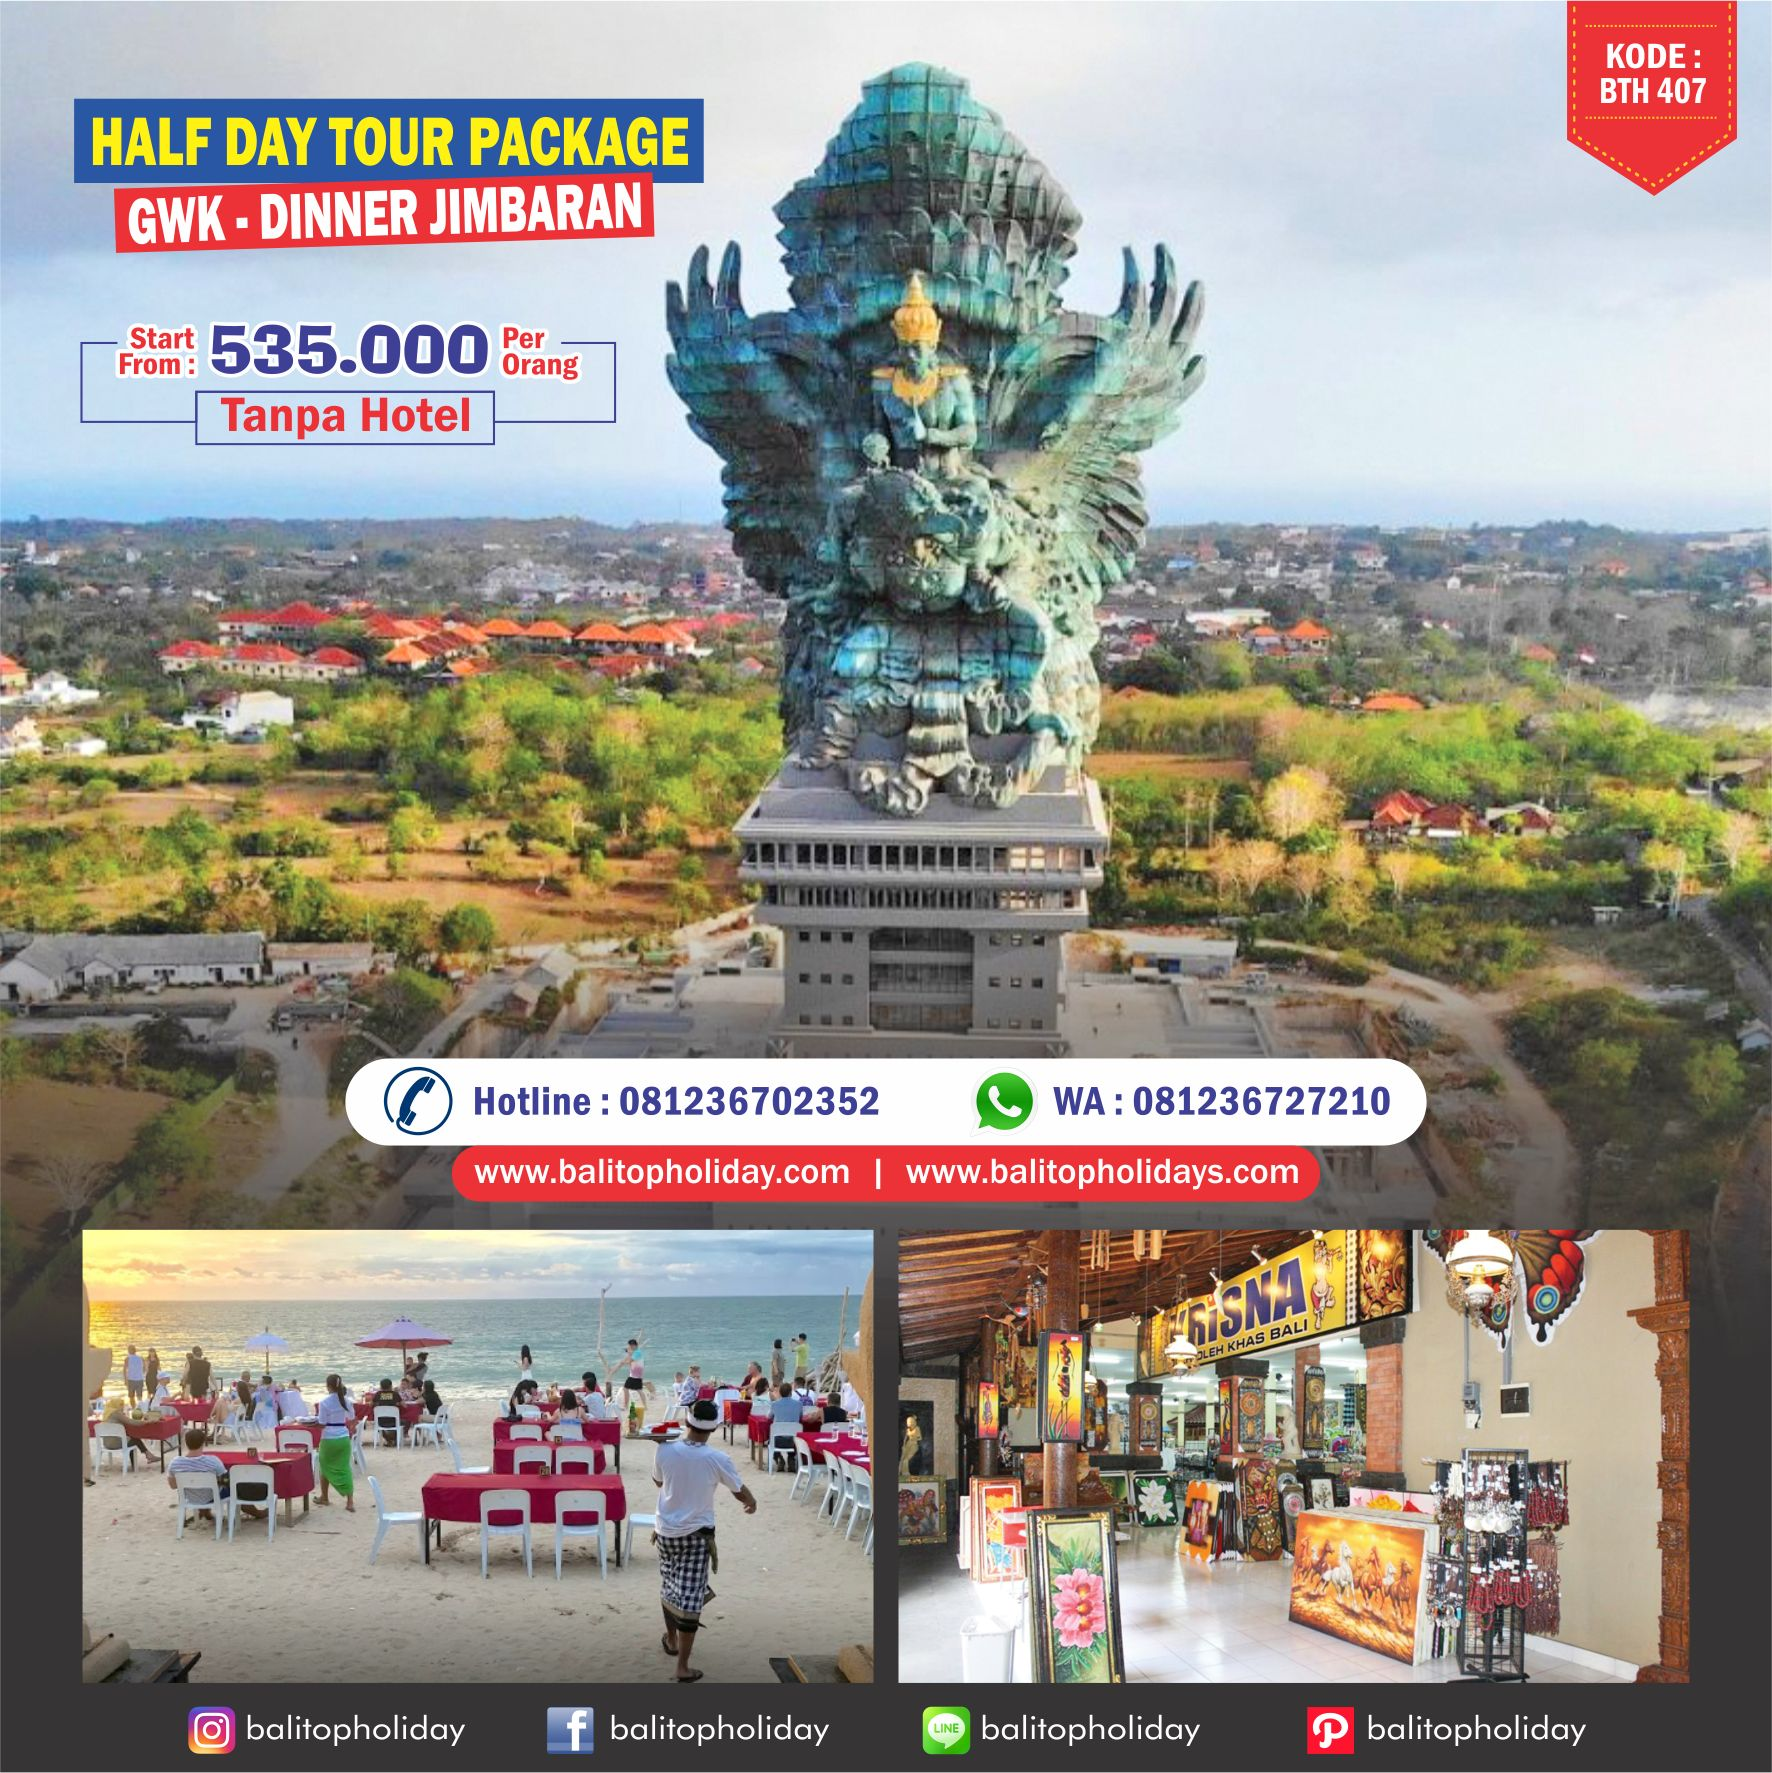 Paket Halfday Tour GWK – Dinner Jimbaran